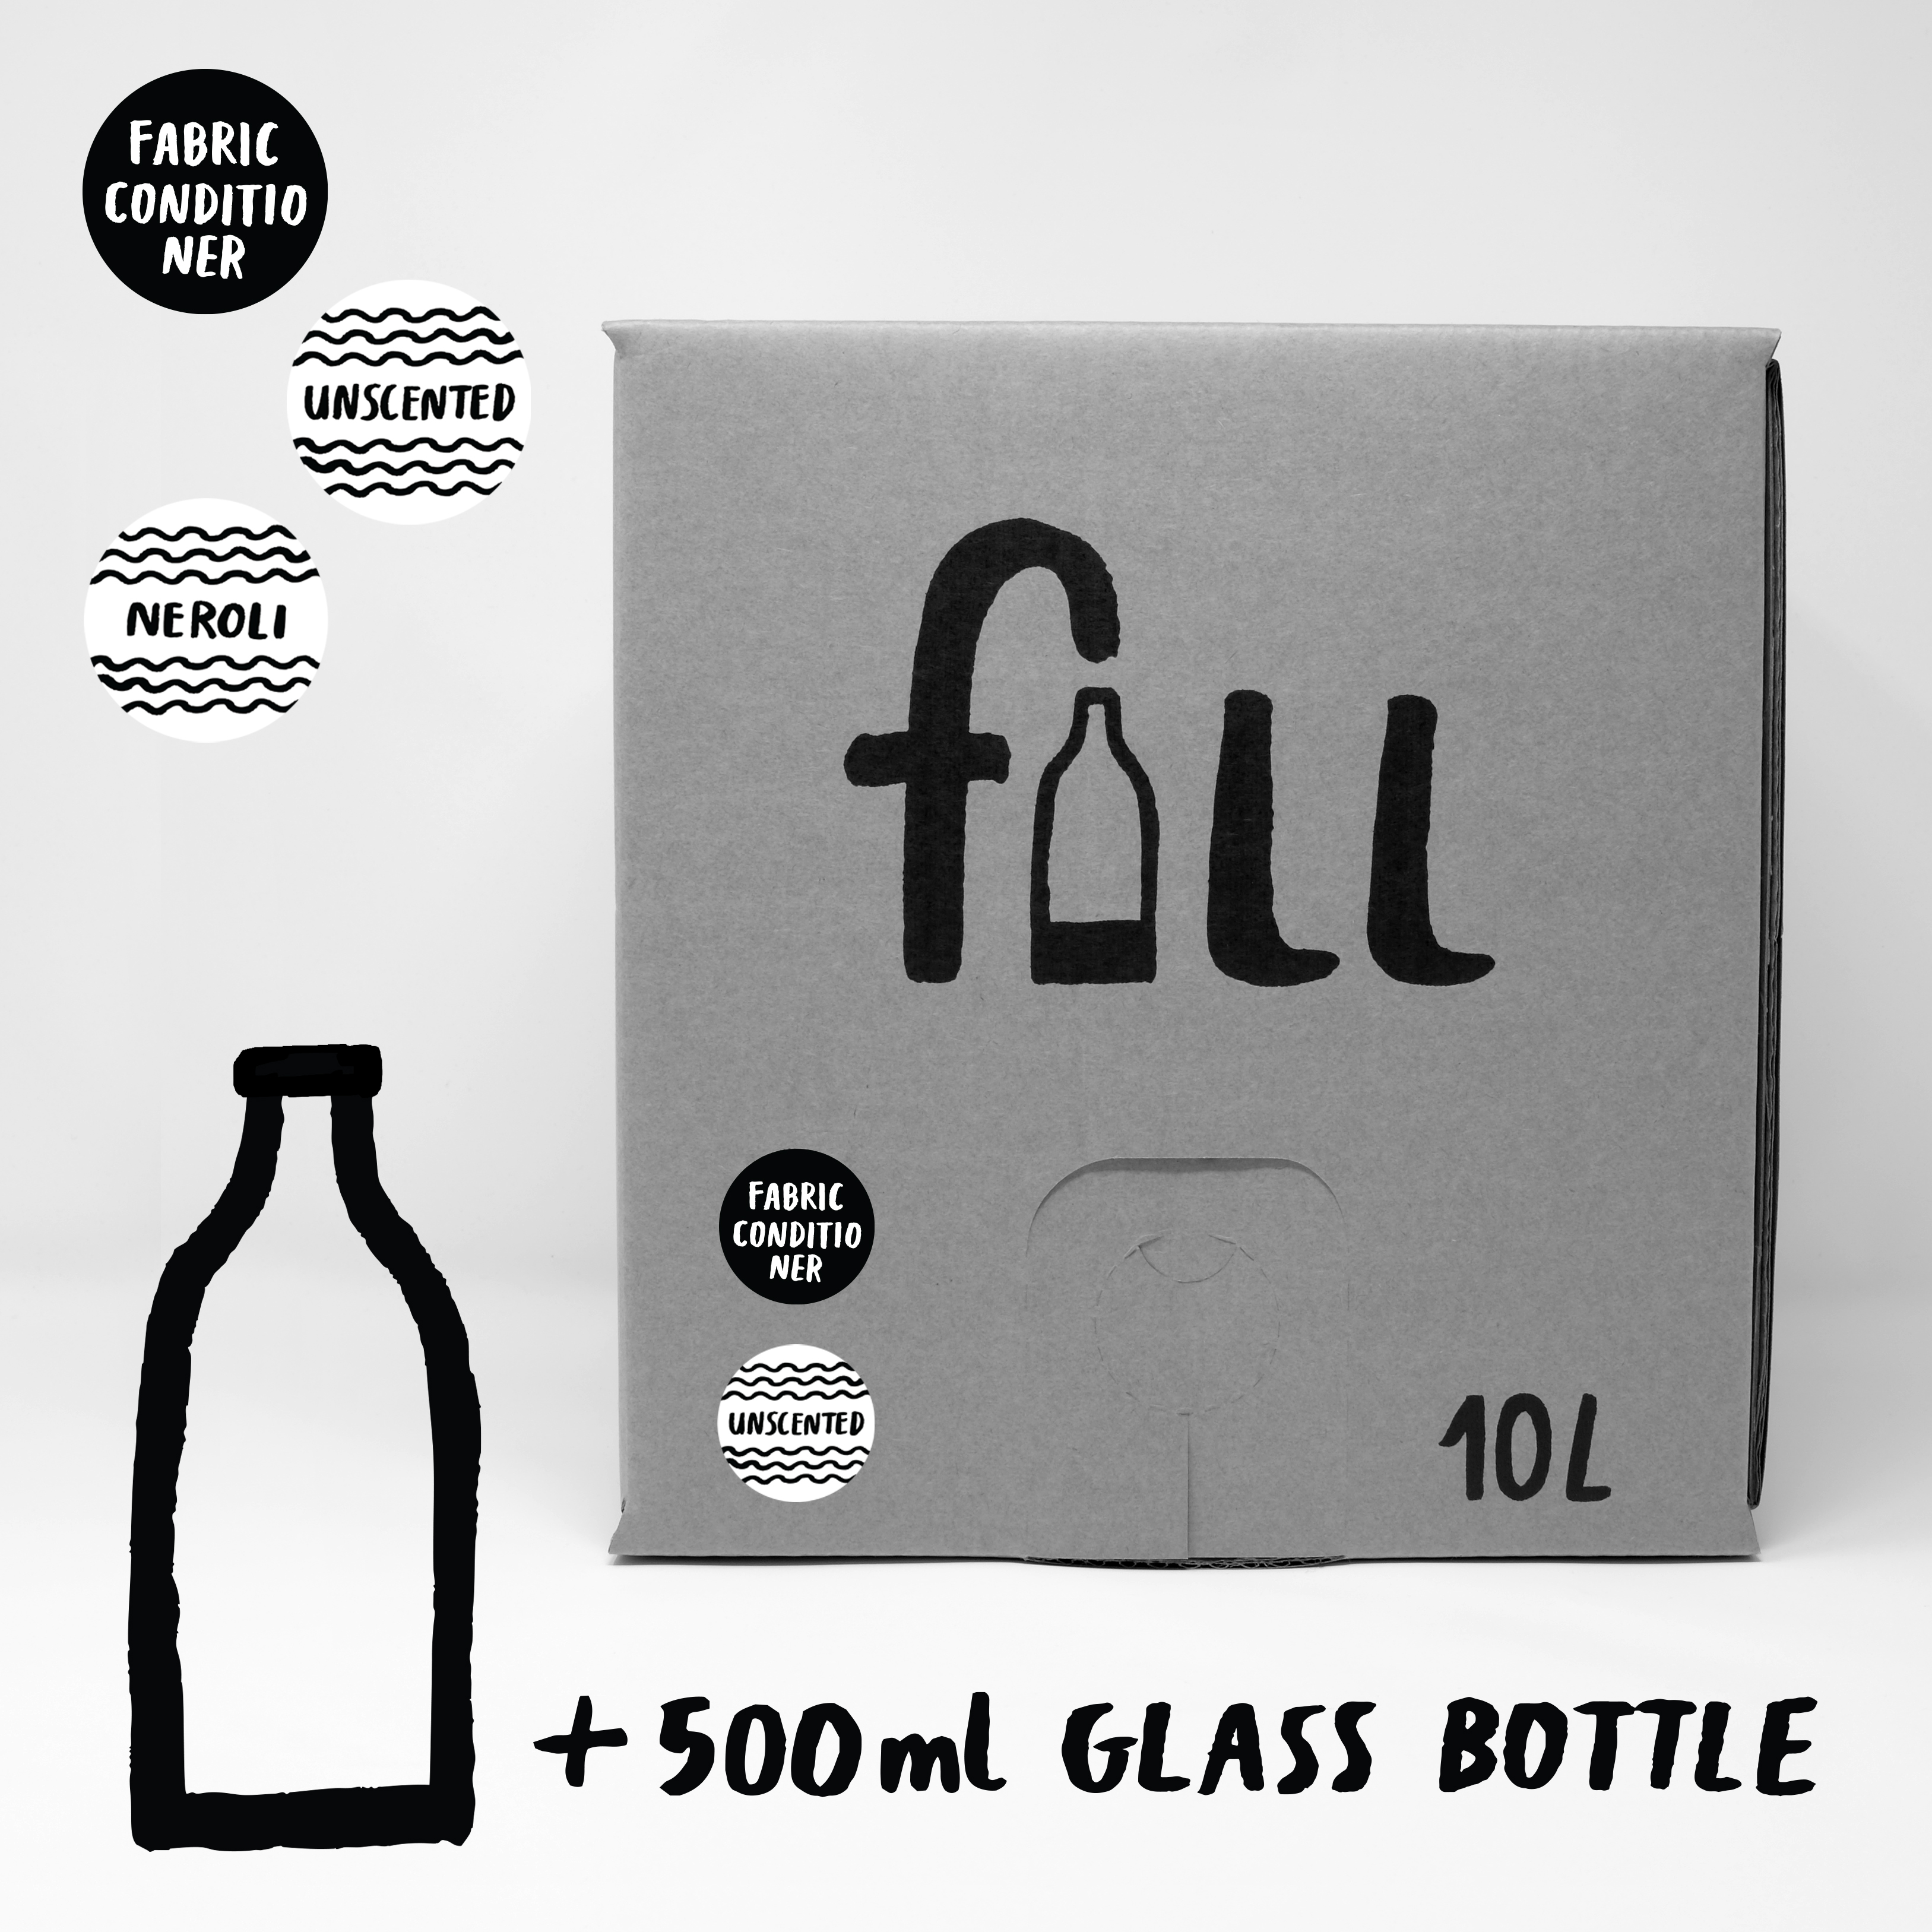 DO NOT USE Fill Refill Co Fabric Conditioner Neroli Scented - 500ml Full Bottle